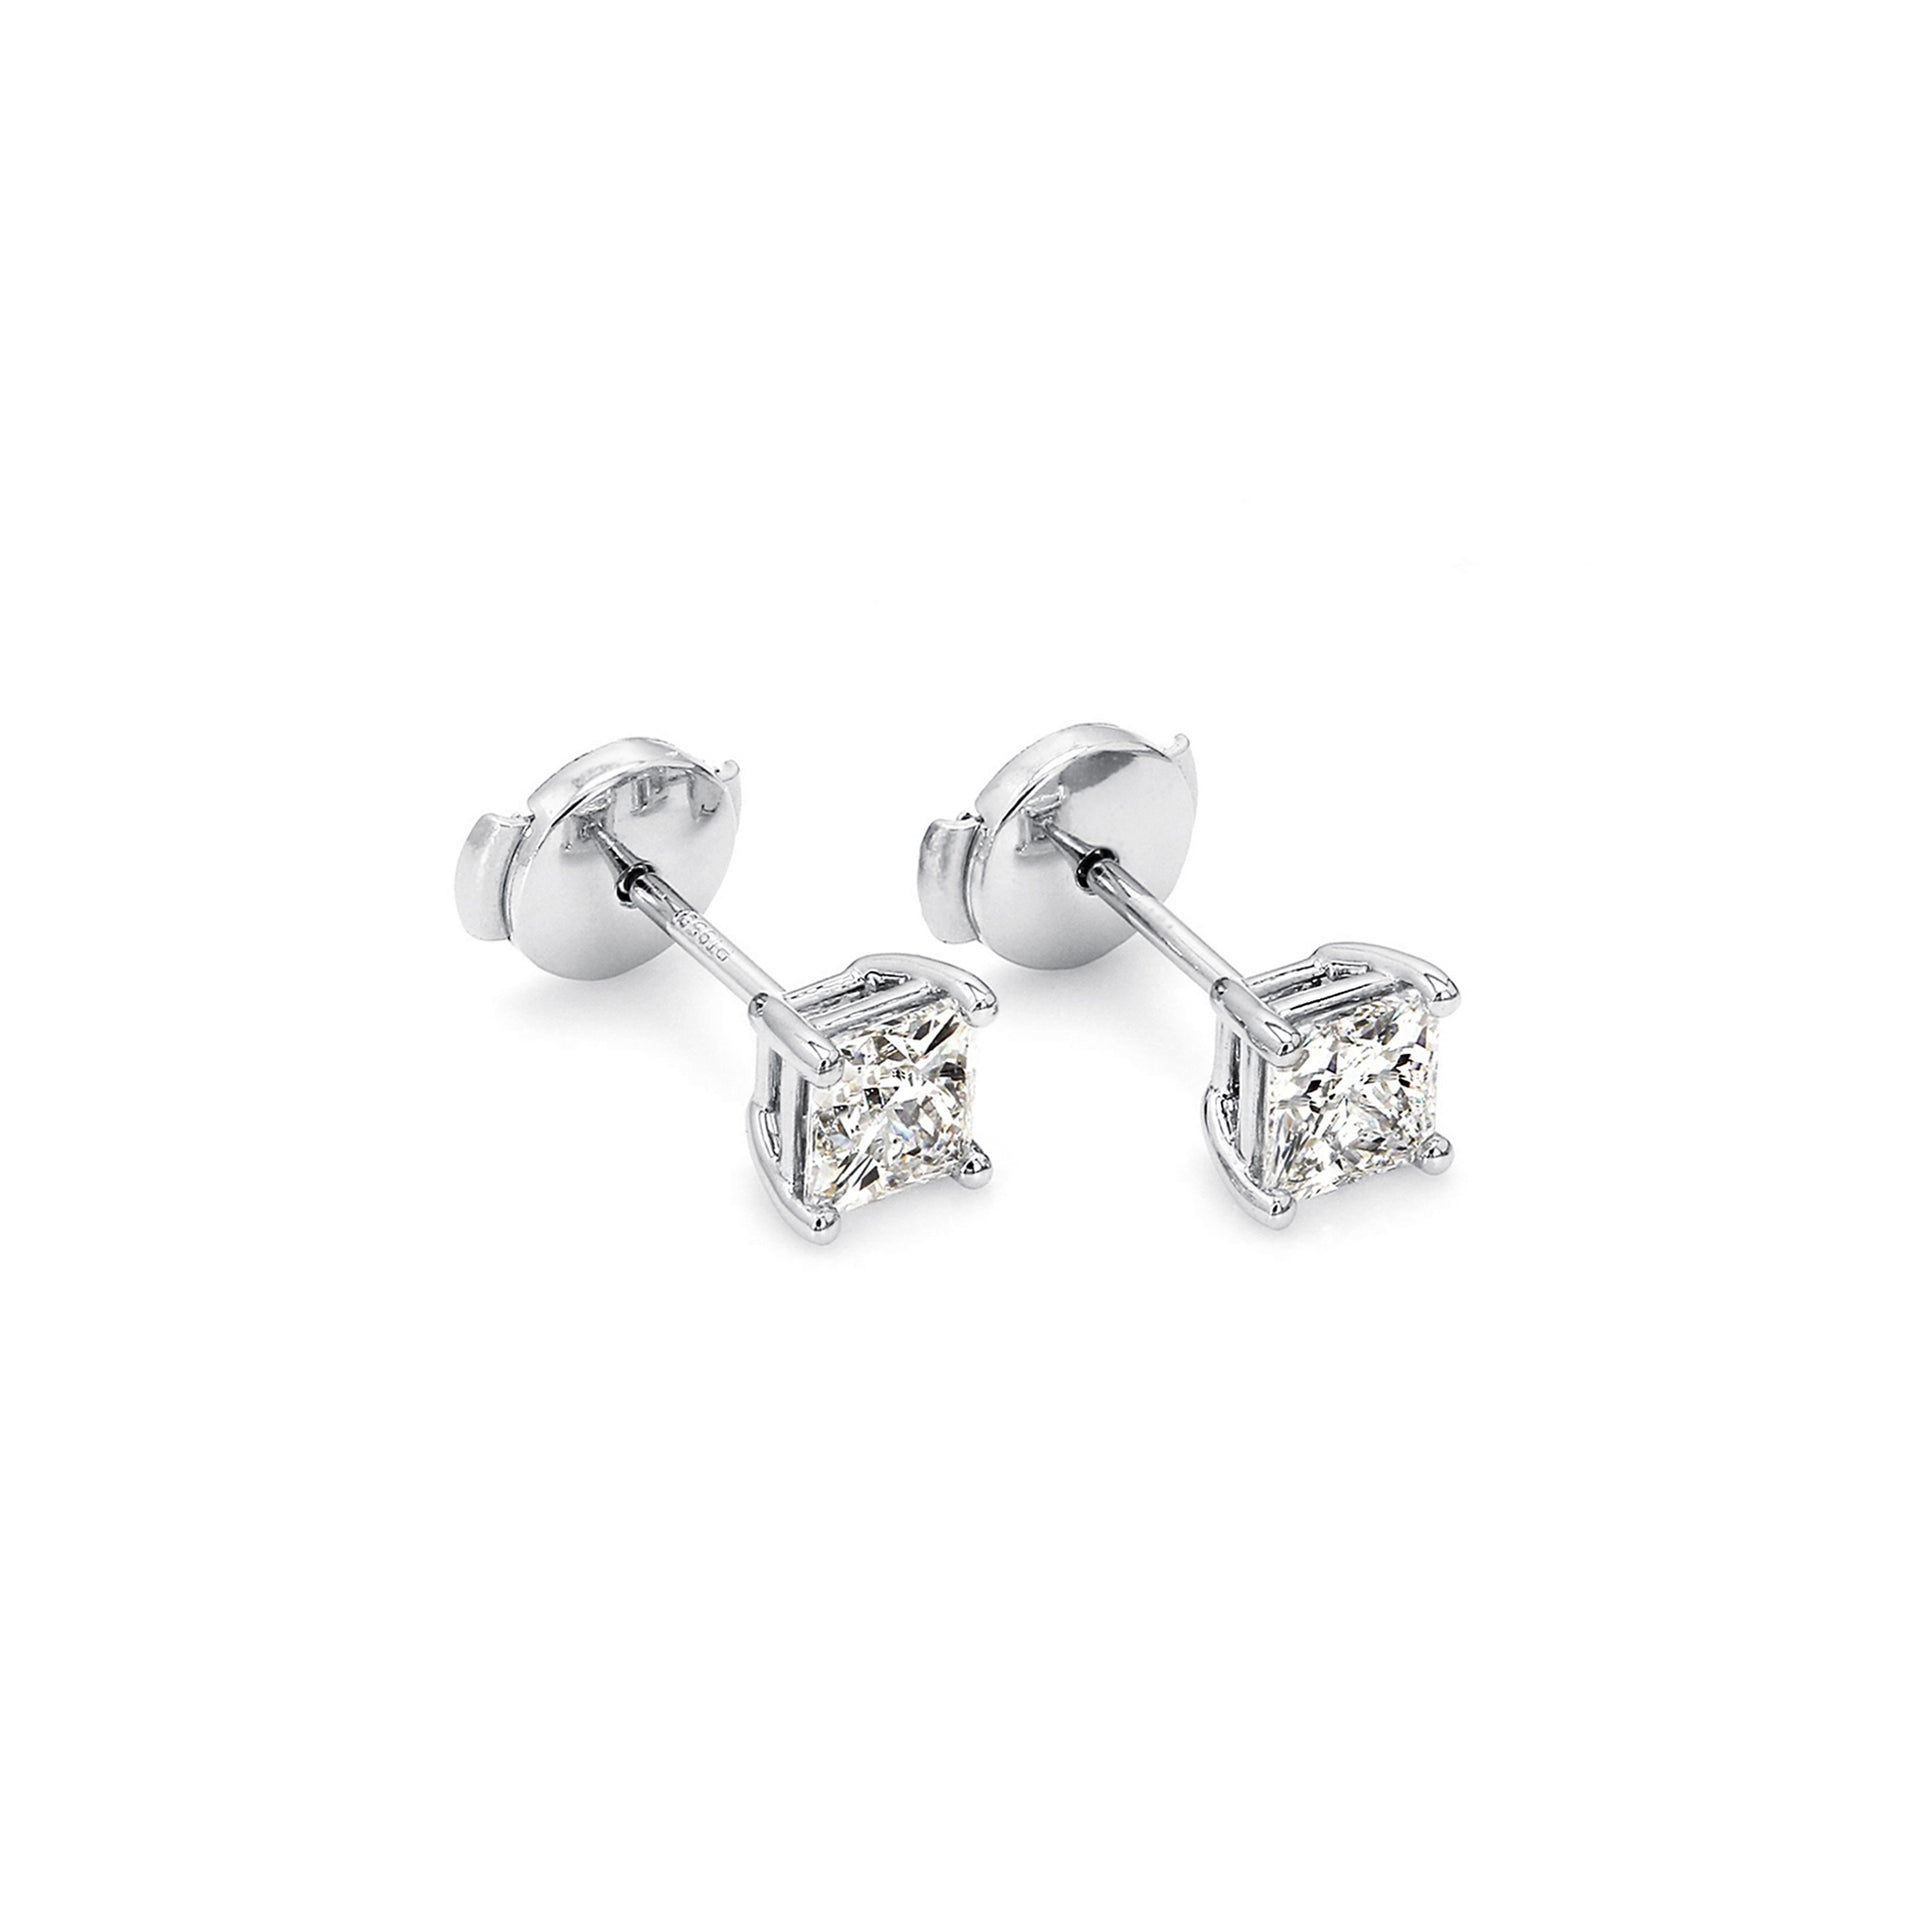 My Girl Solitaire Stud Earrings in Platinum 3D View